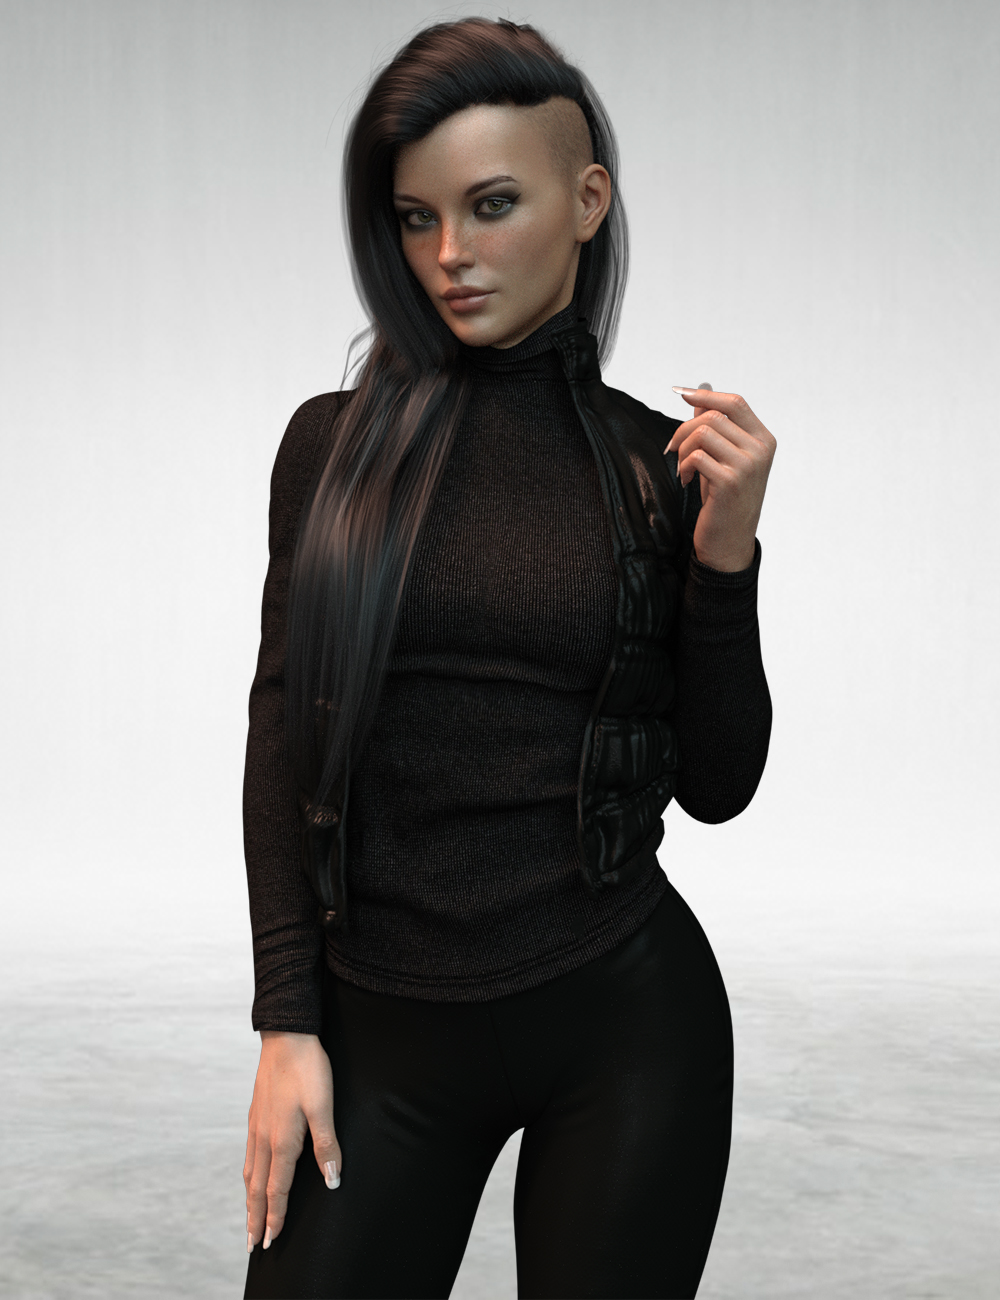 X-Fashion Autumn Winter Outfit for Genesis 8 Females by: xtrart-3d, 3D Models by Daz 3D